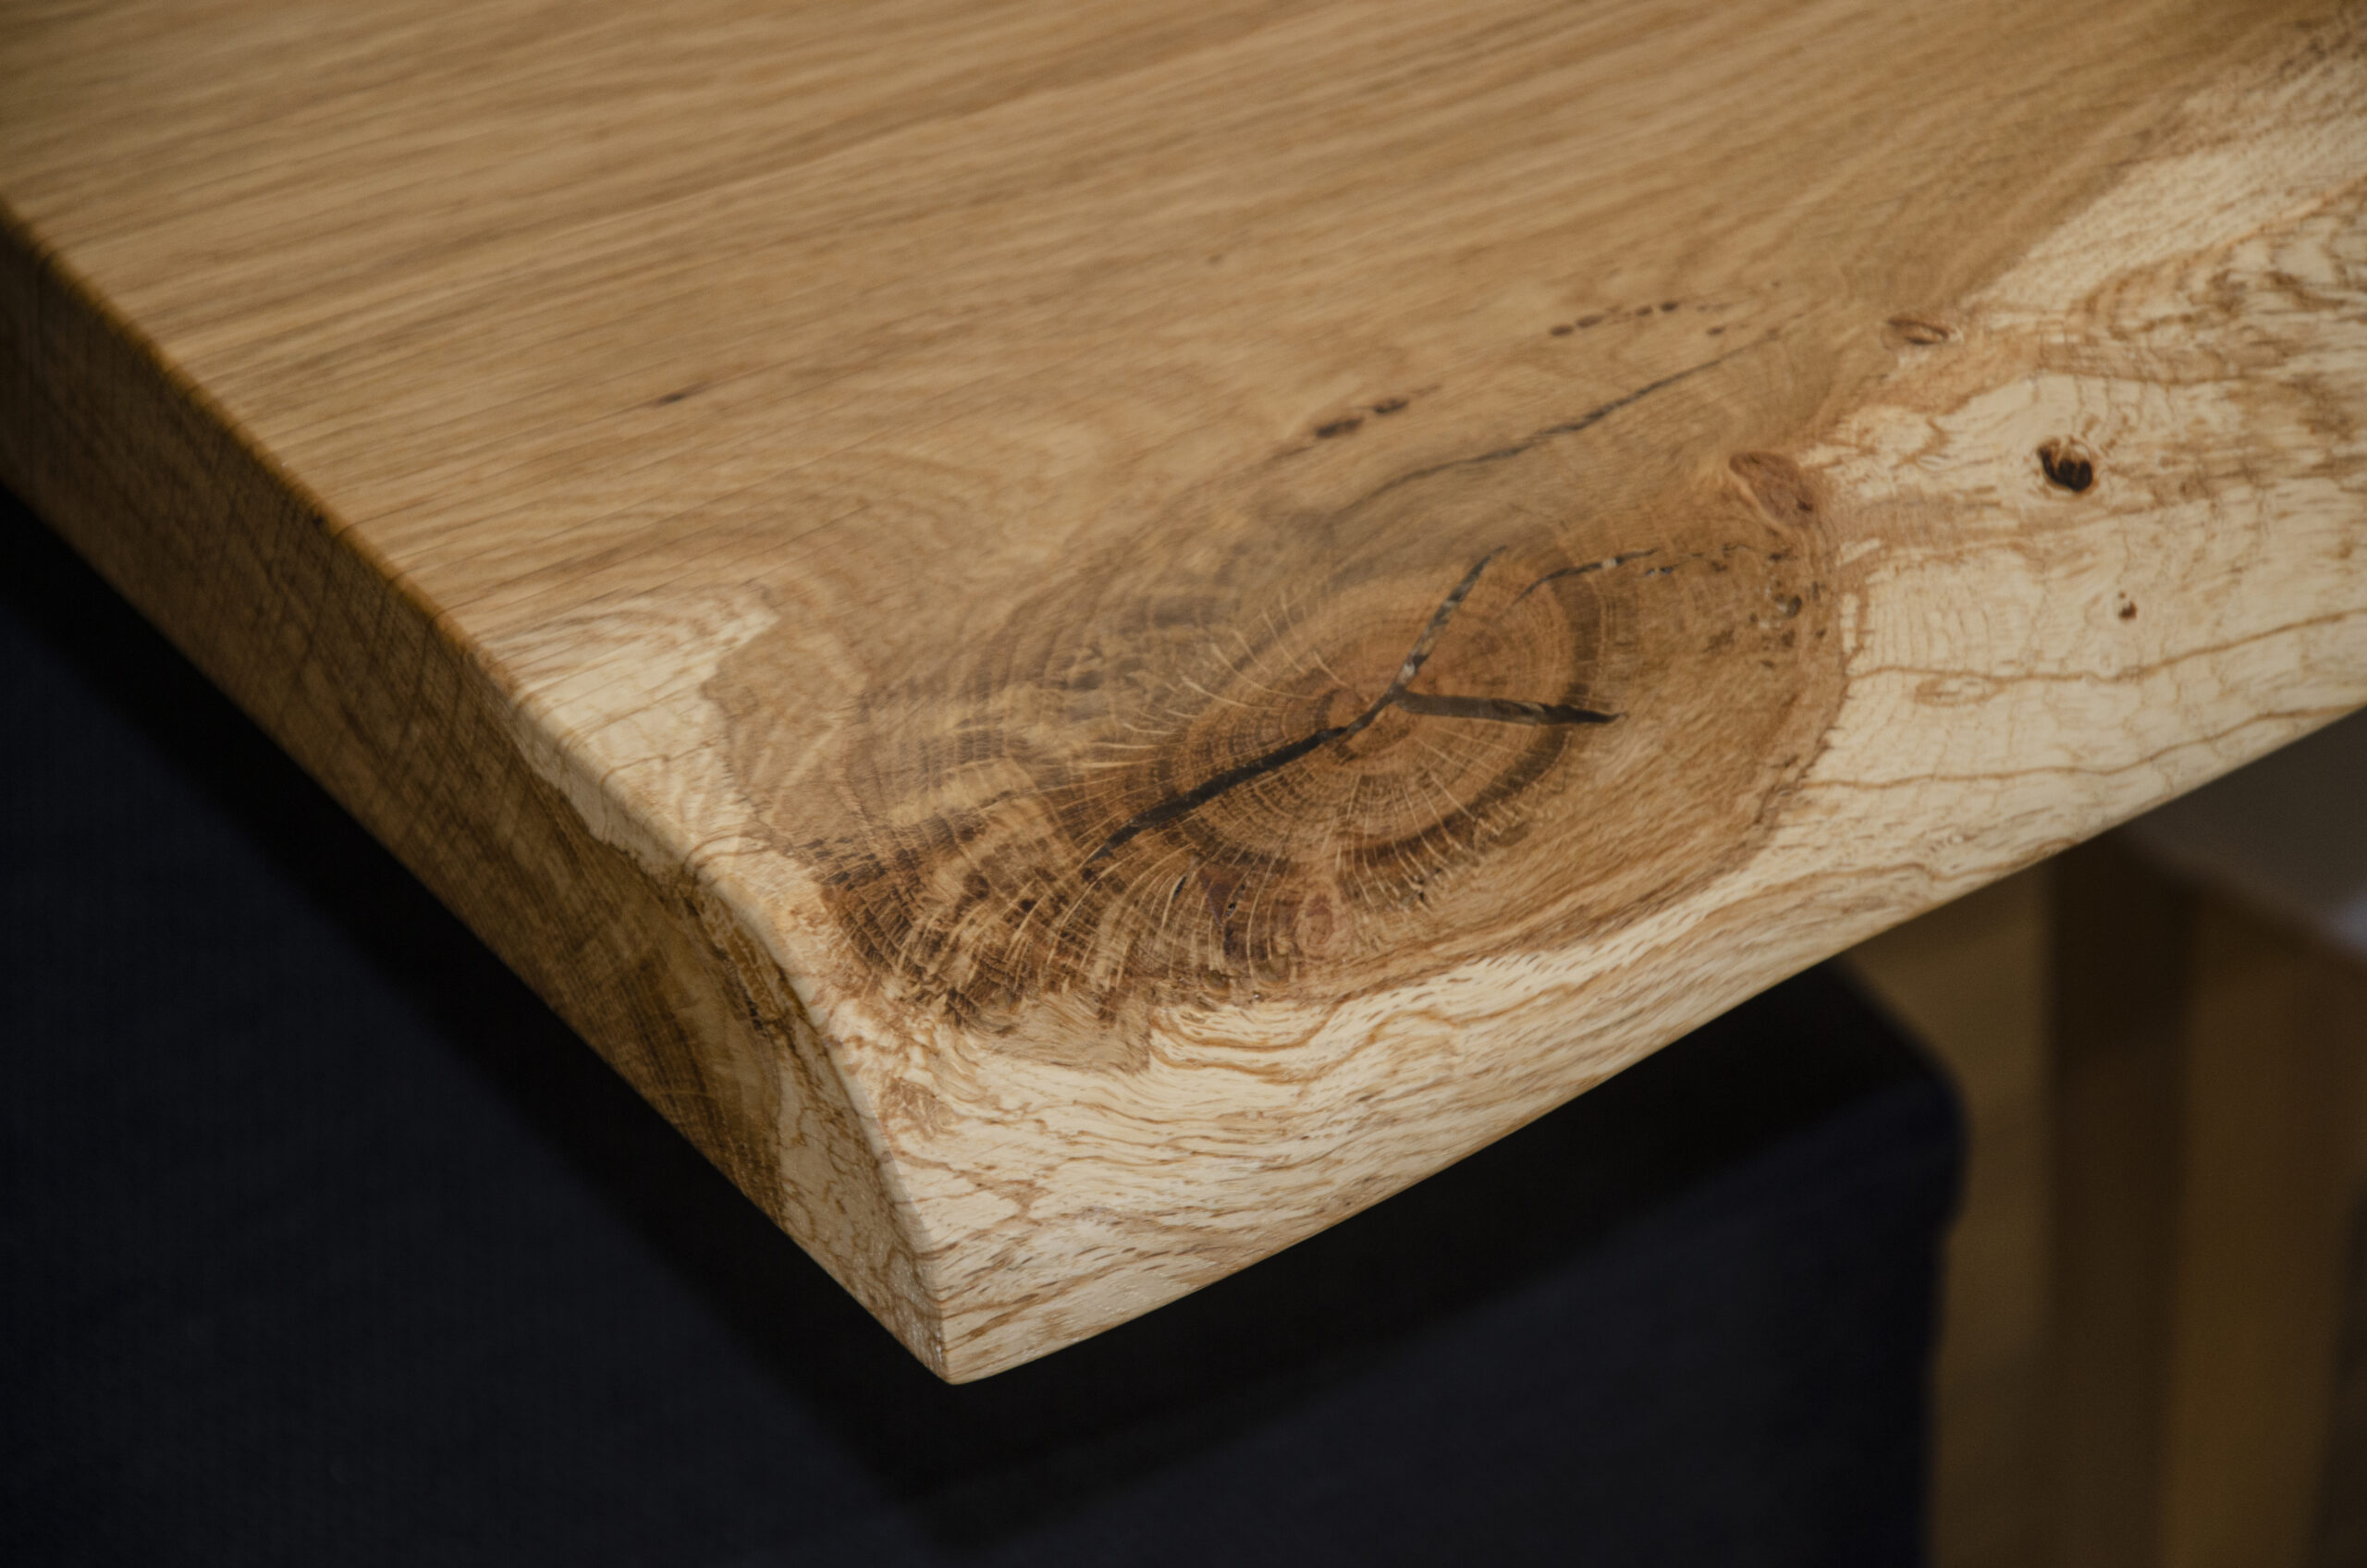 Impregnation and maintenance of wood furniture